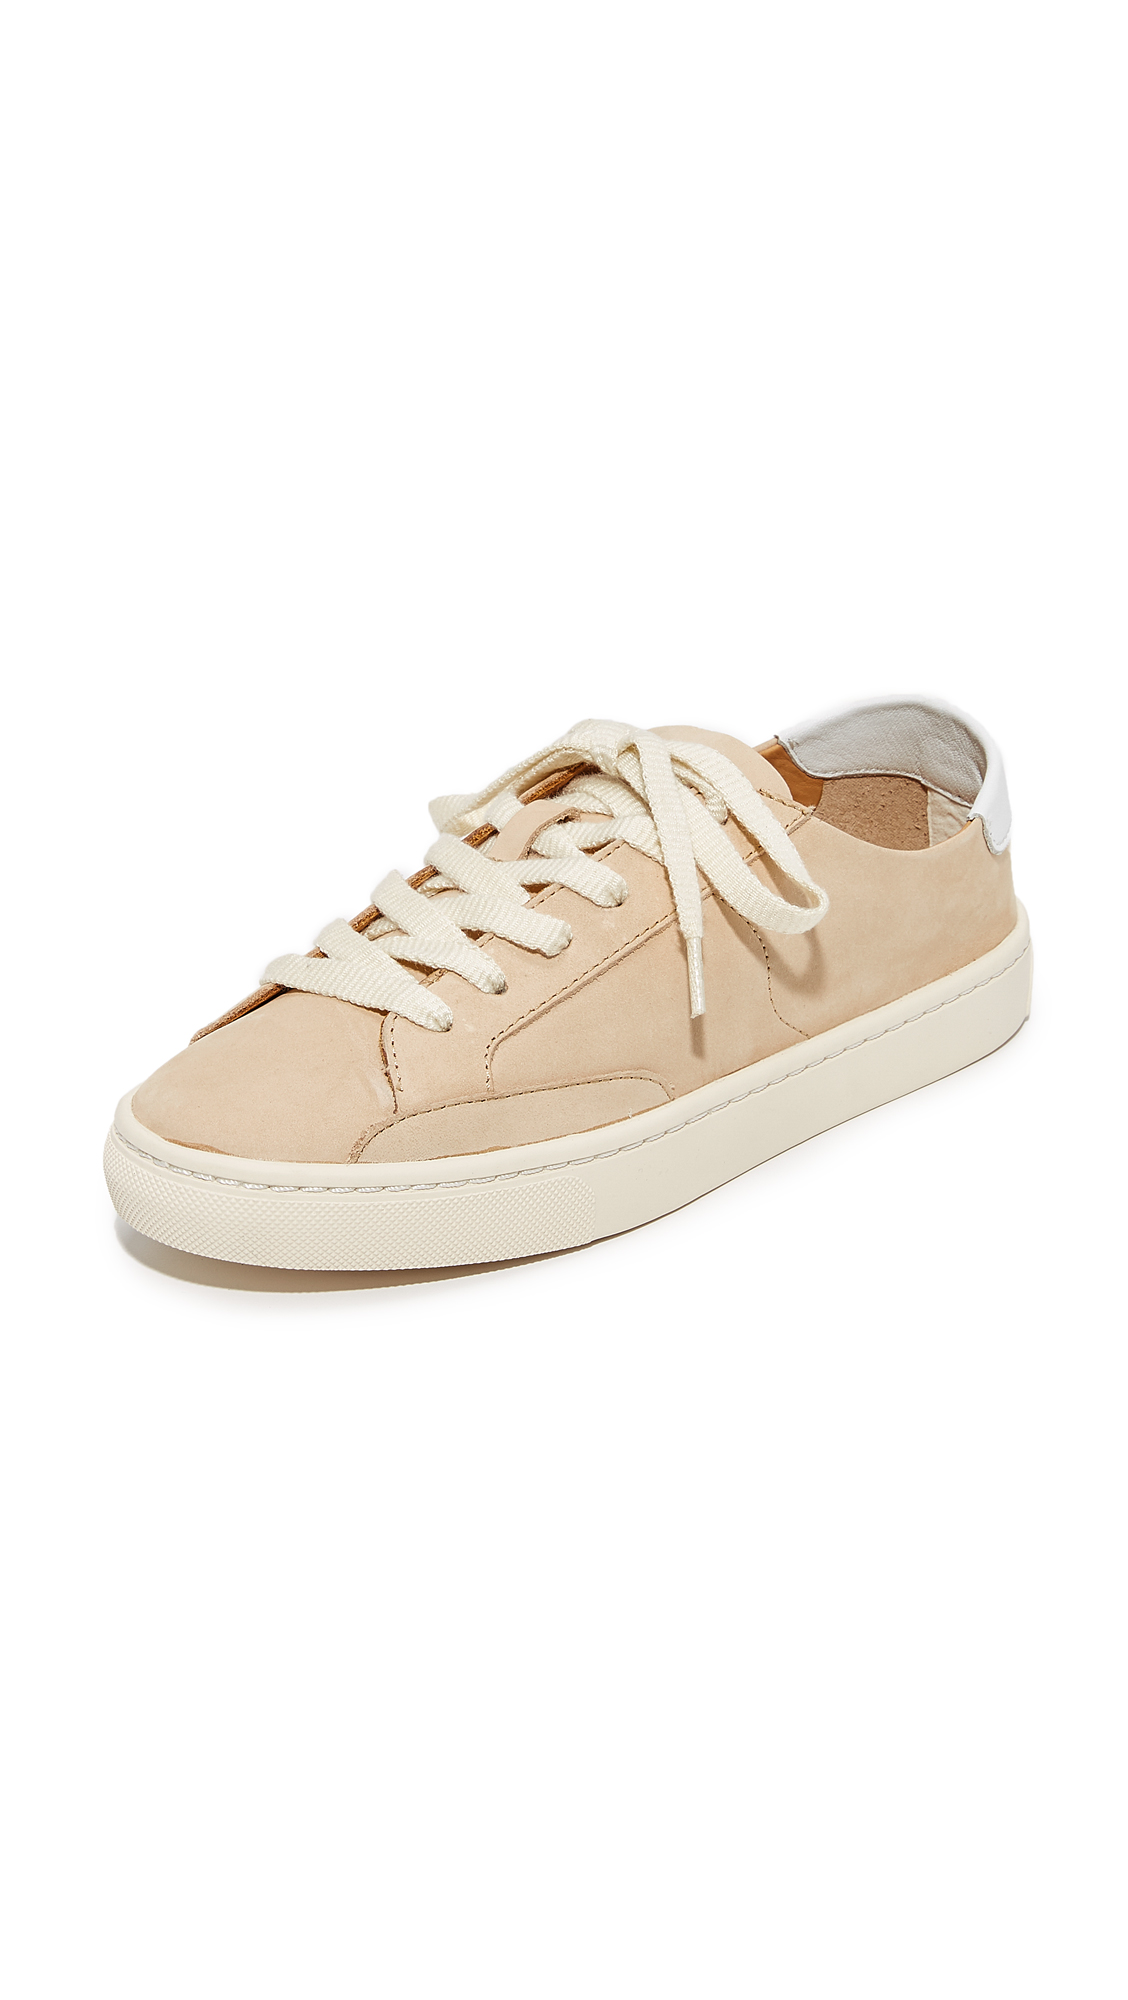 Soludos Ibiza Classic Lace Up Sneakers - Nude